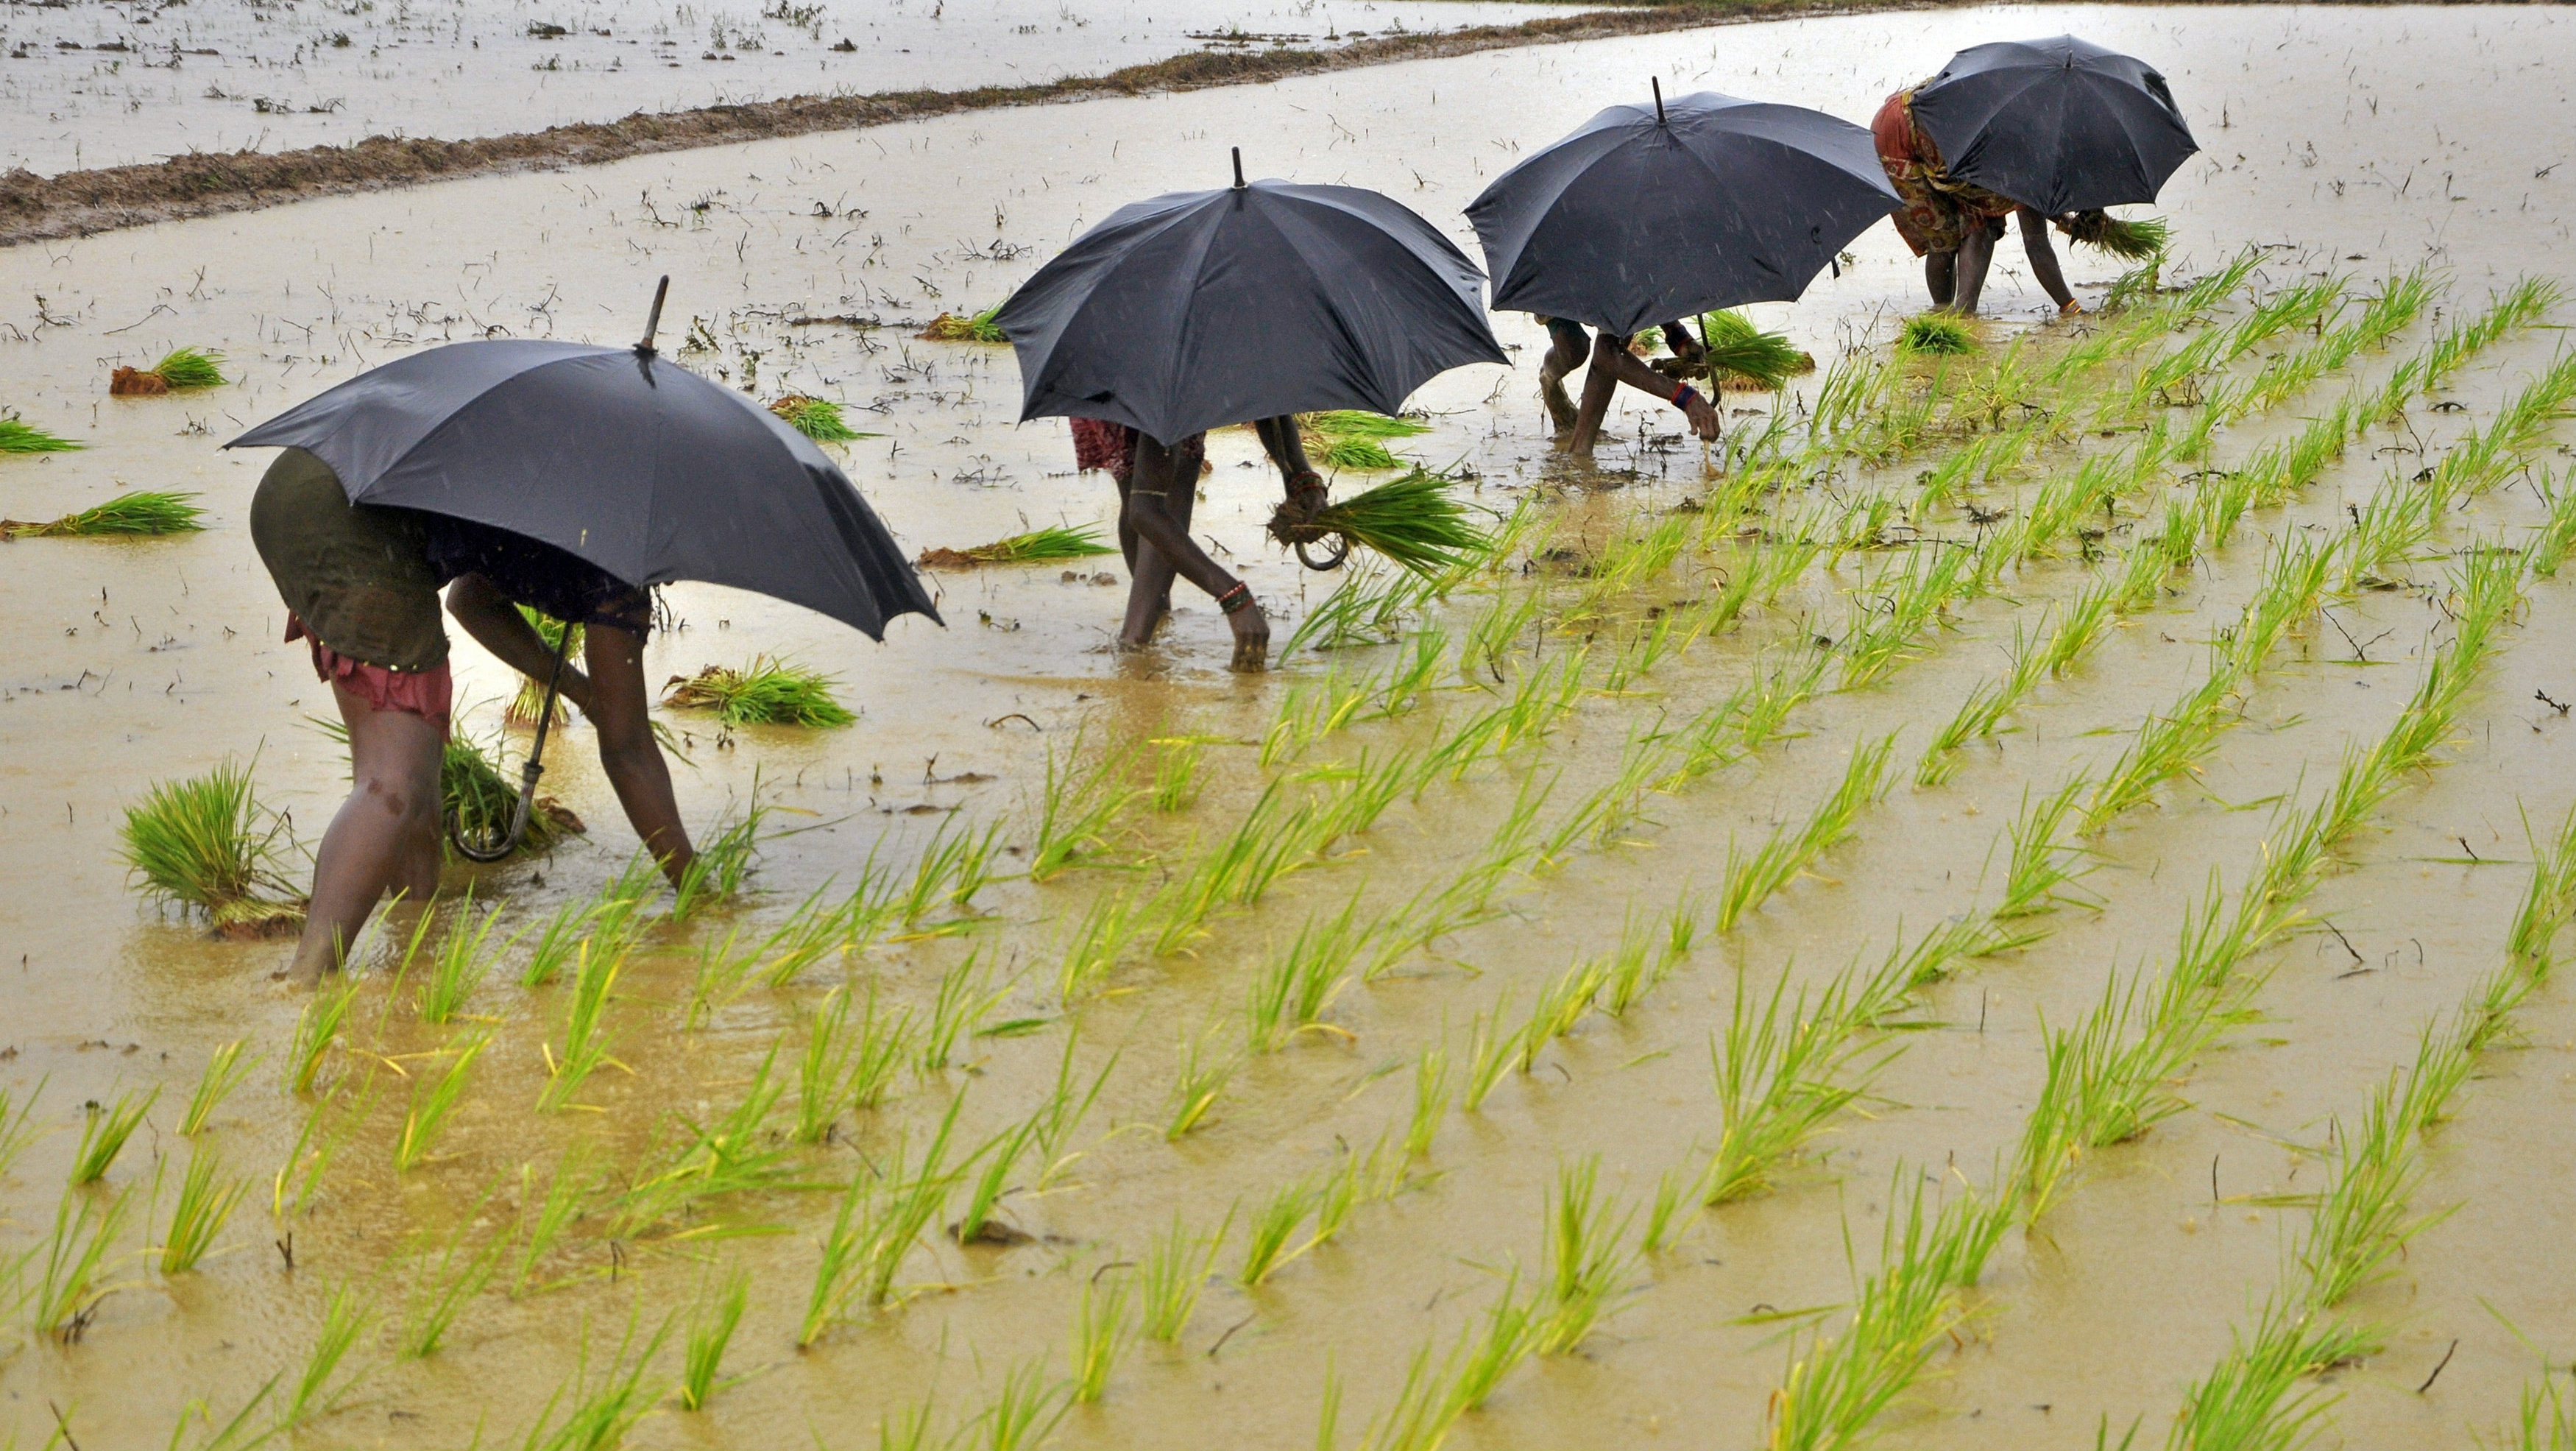 Labourers plant saplings in a paddy field on the outskirts of the eastern Indian city of Bhubaneswar July 19, 2014. With this year's monsoon rains several weeks late, the world's second-largest sugar and rice producer is on the verge of widespread drought in the face of a developing Pacific Ocean weather event known as El Nino, which is often associated with drought in South Asia. To match INDIA-MONSOON/FARMERS Picture taken July 19, 2014.